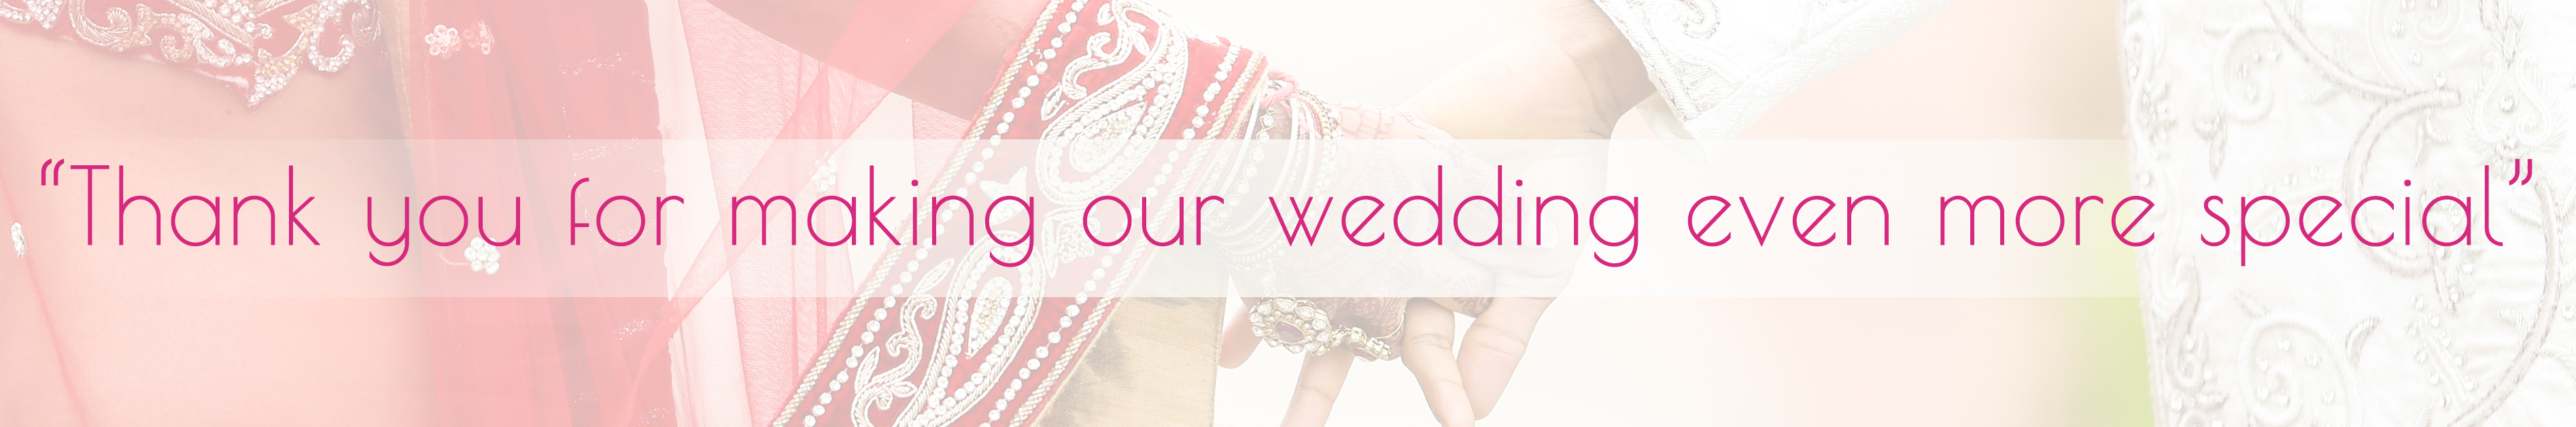 Asian Wedding Hire West Midlands